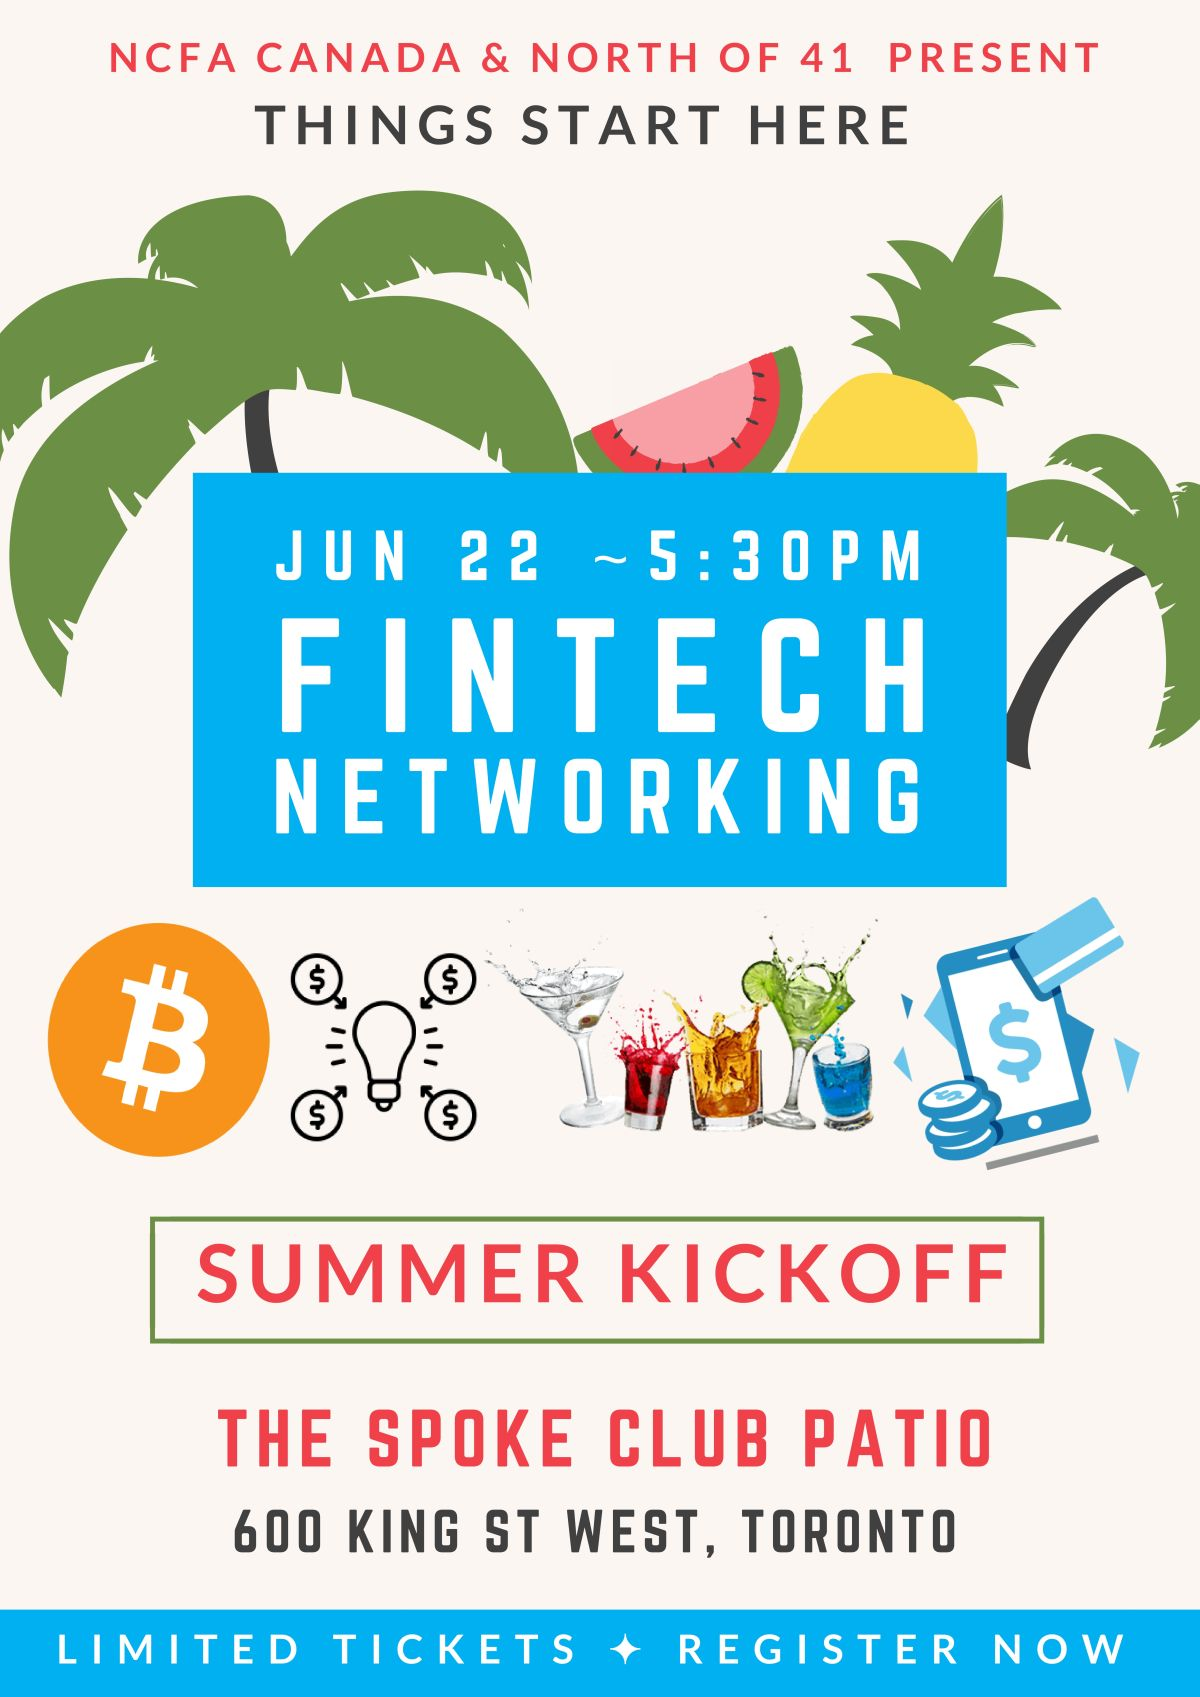 NCFA and North of 41 Summer Kickoff Networking Jun 22 @The Spoke Club